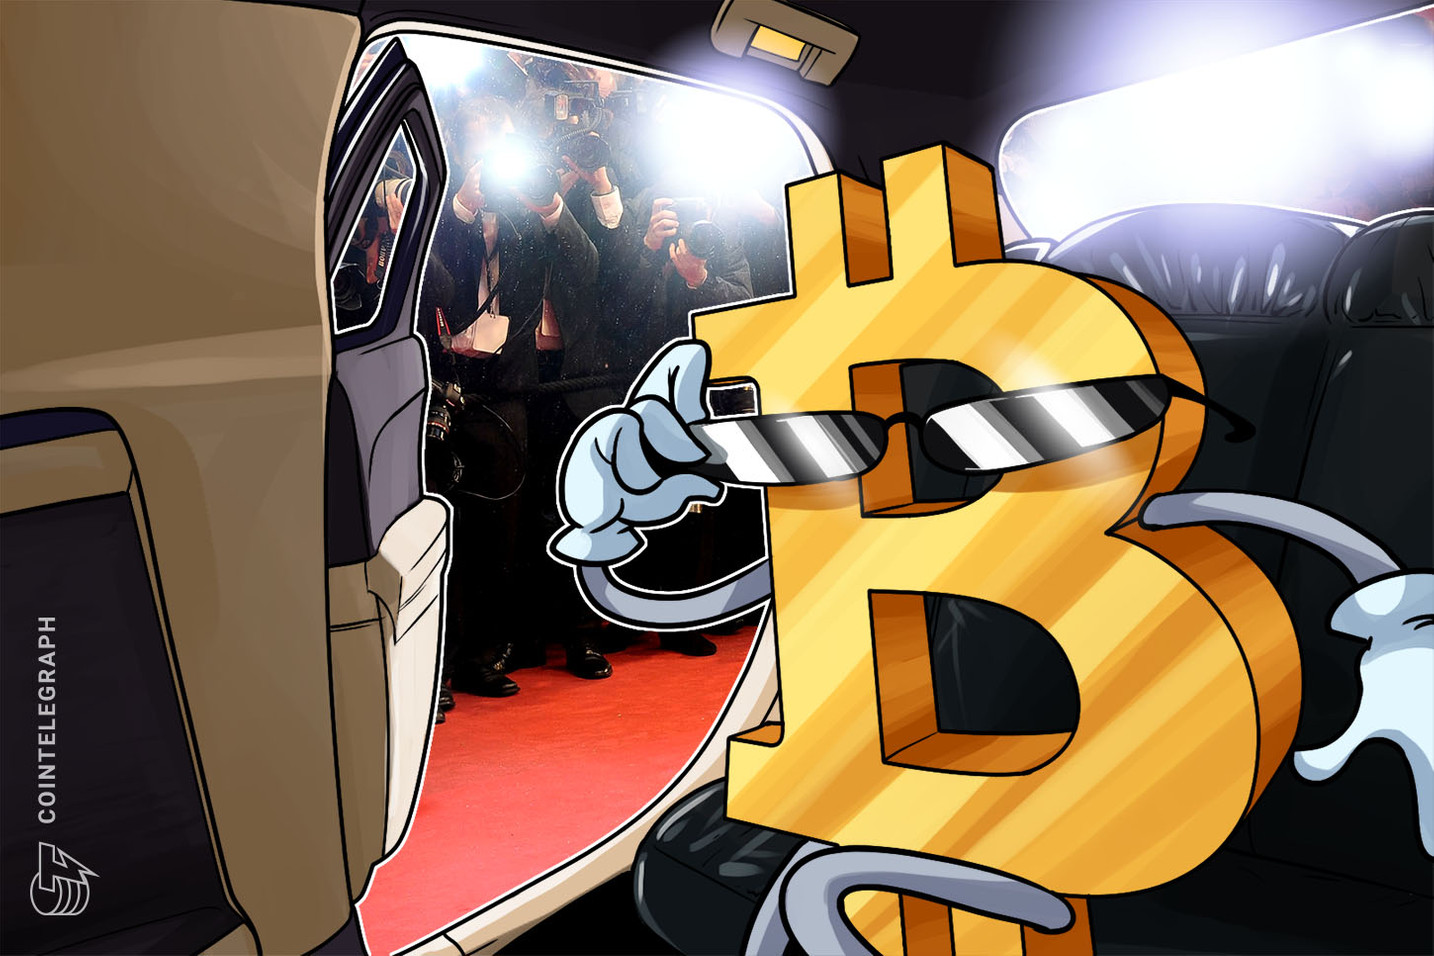 Bitcoin Market Dominance Climbs to Over 60% - Highest in Over 2 Years